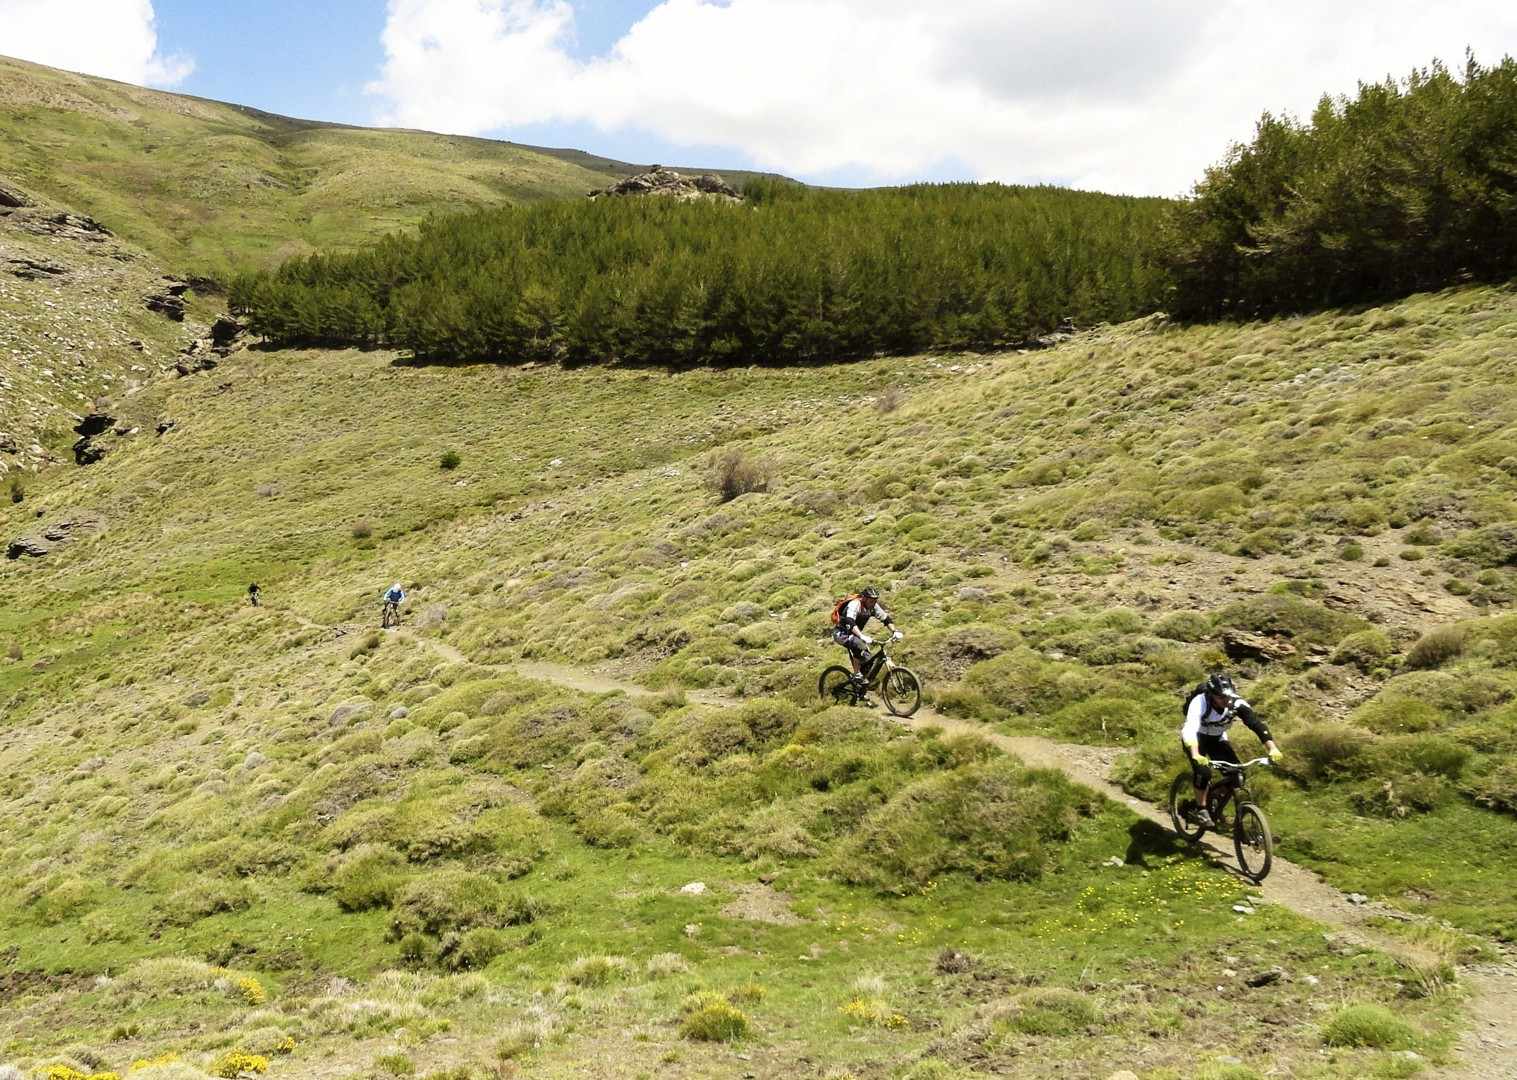 mountain-biking-holiday-in-spain-sierra-nevada-skedaddle-2.jpg - Spain - Sensational Sierra Nevada - Mountain Biking